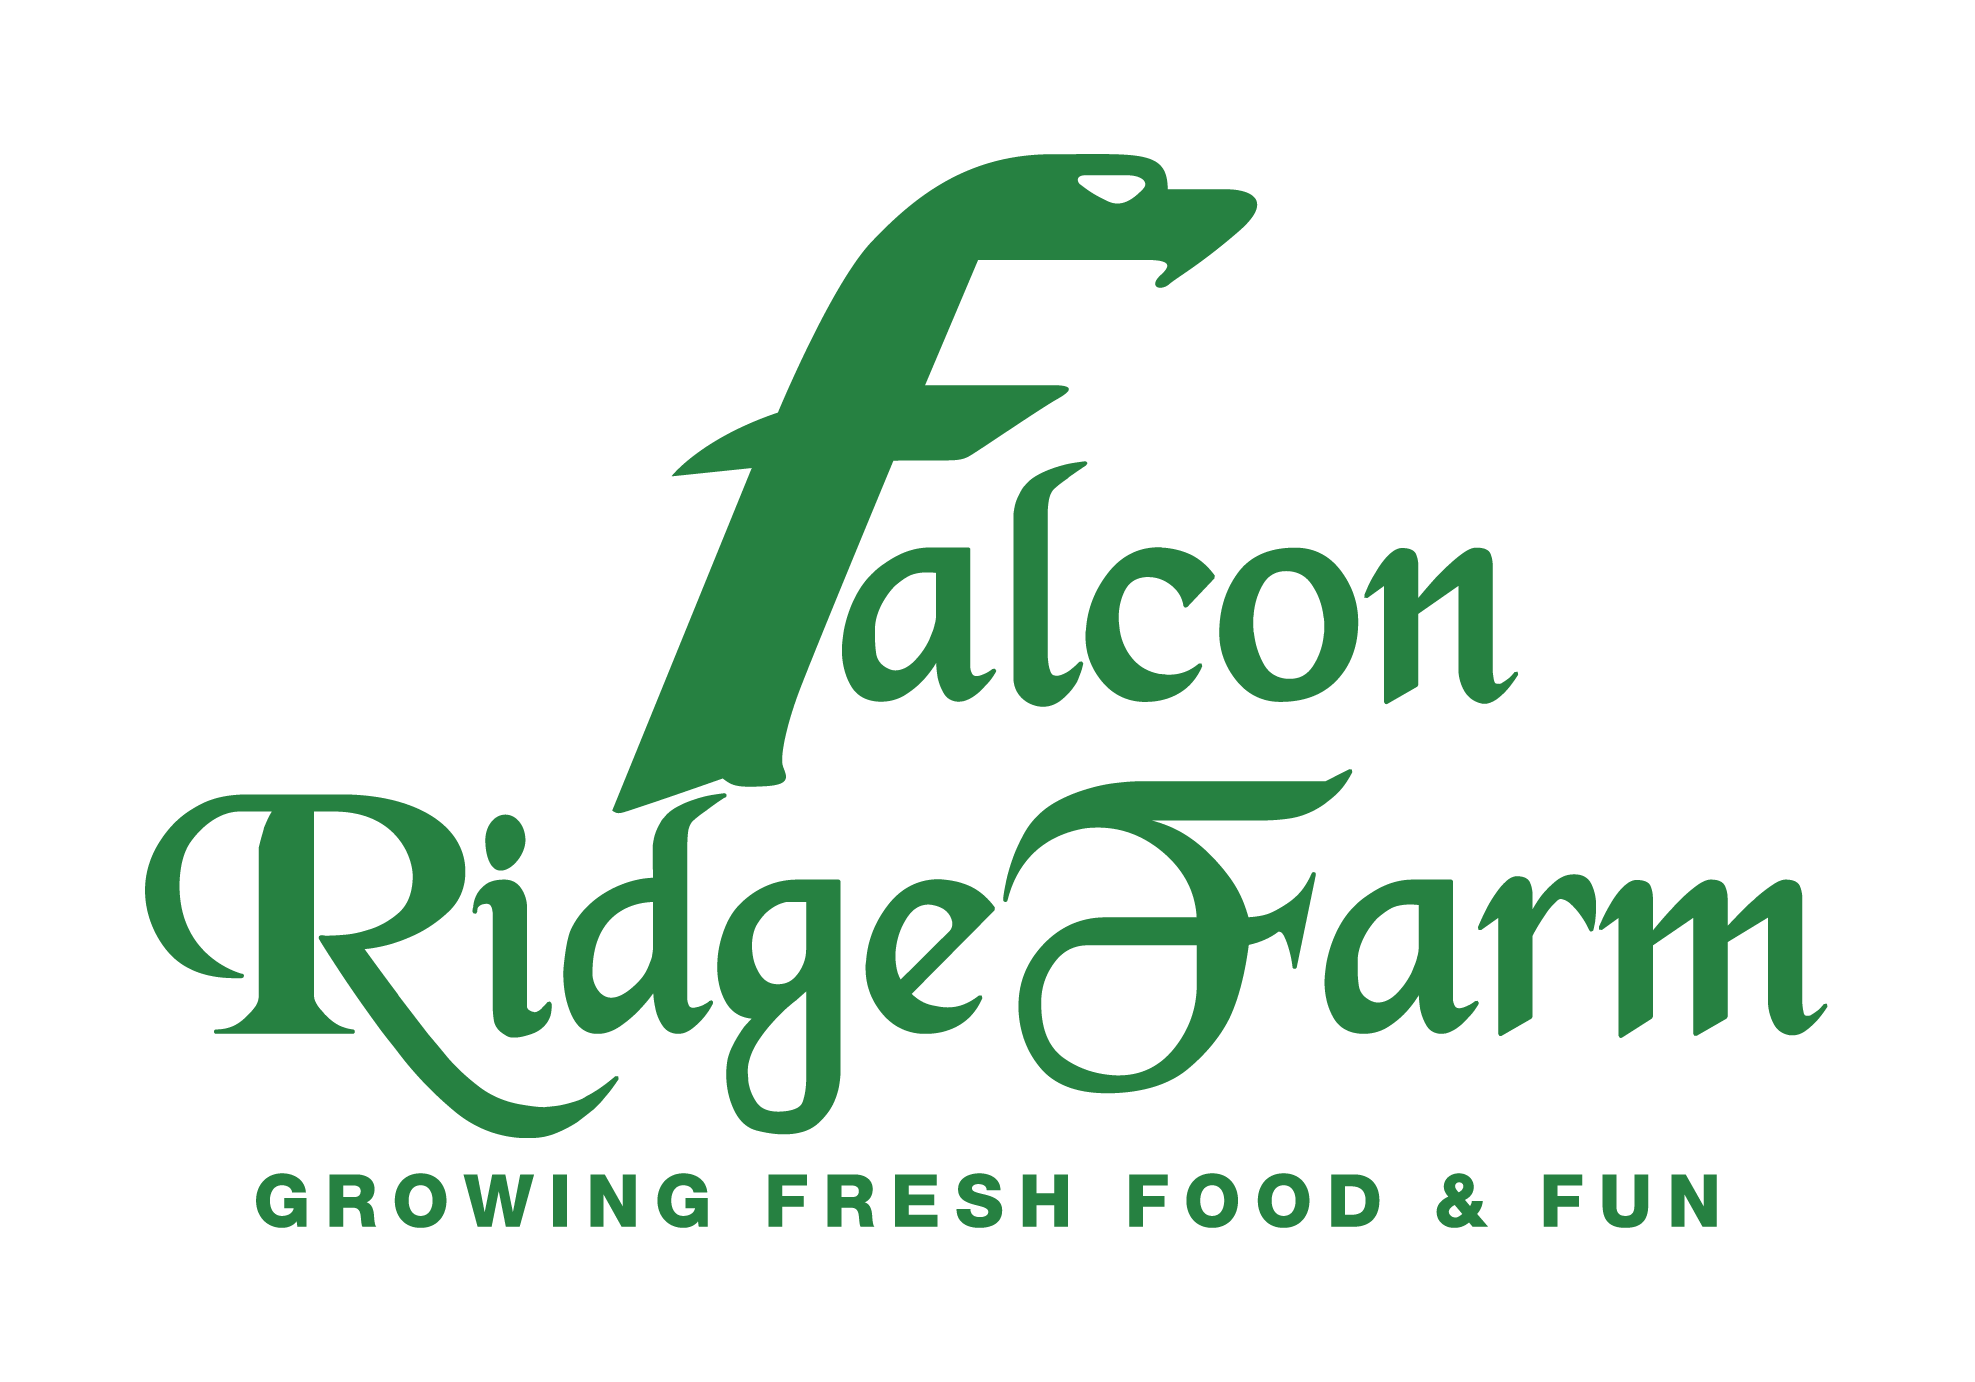 Falcon Ridge Farm